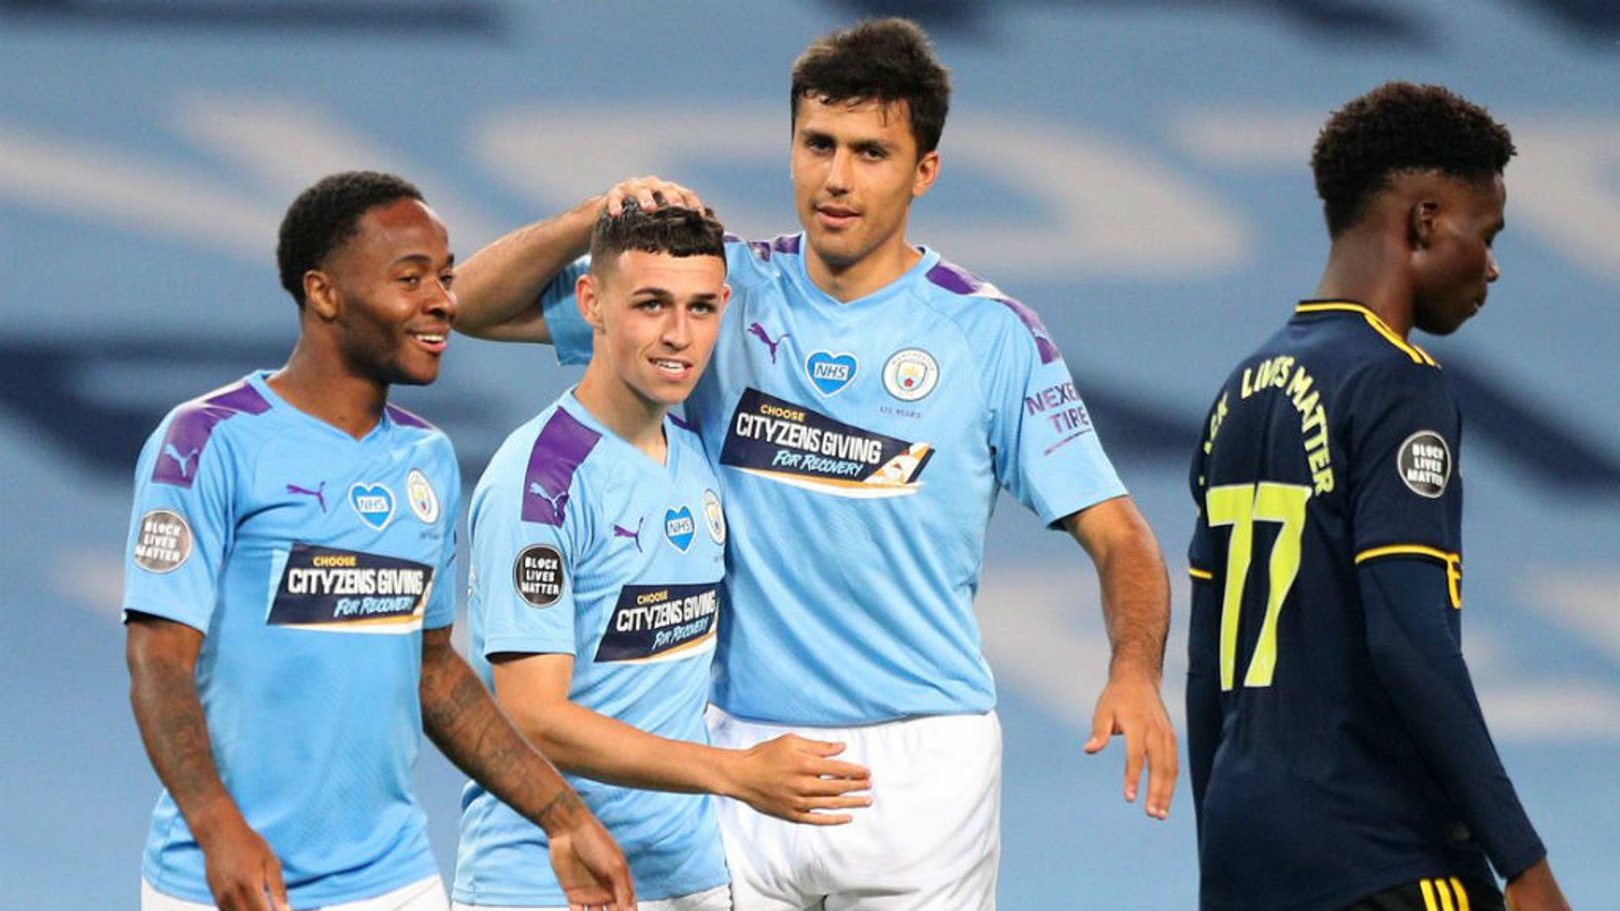 Cityzens Giving for Recovery Shirt Auction raises £17,500